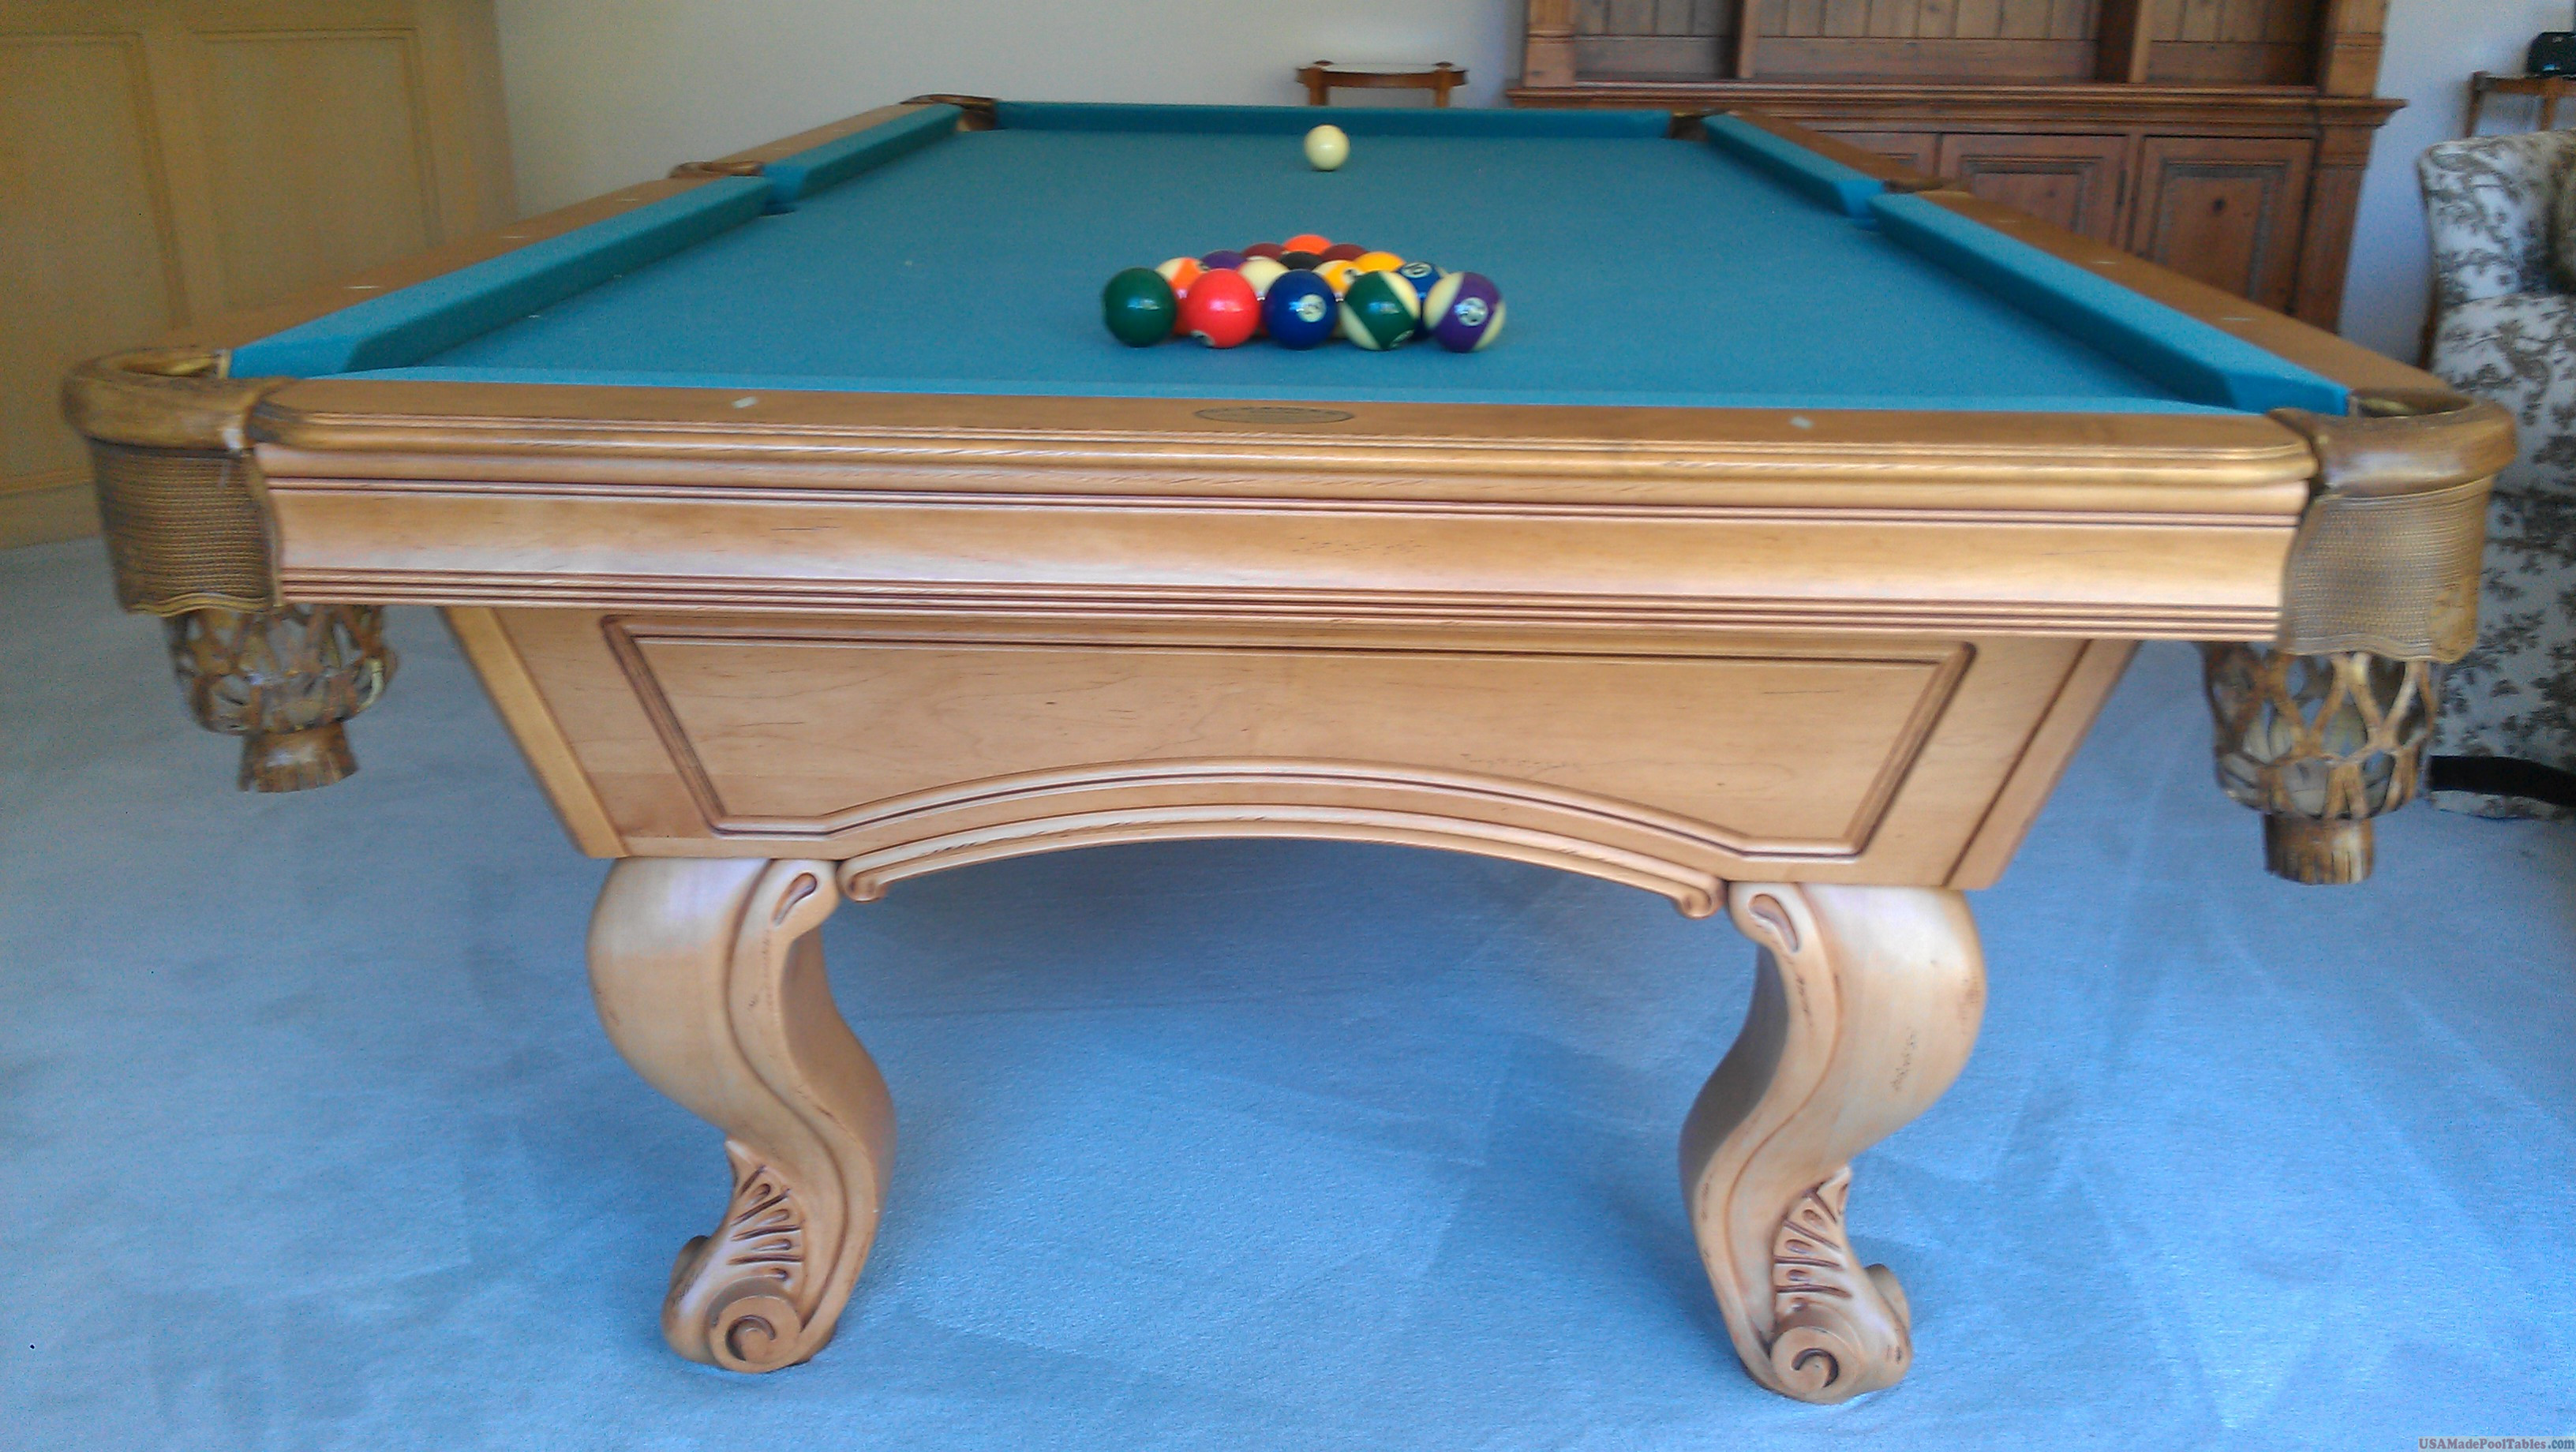 OLHAUSEN POOL TABLES USED POOL TABLES LOS ANGELES ORANGE - Pool table repair san diego